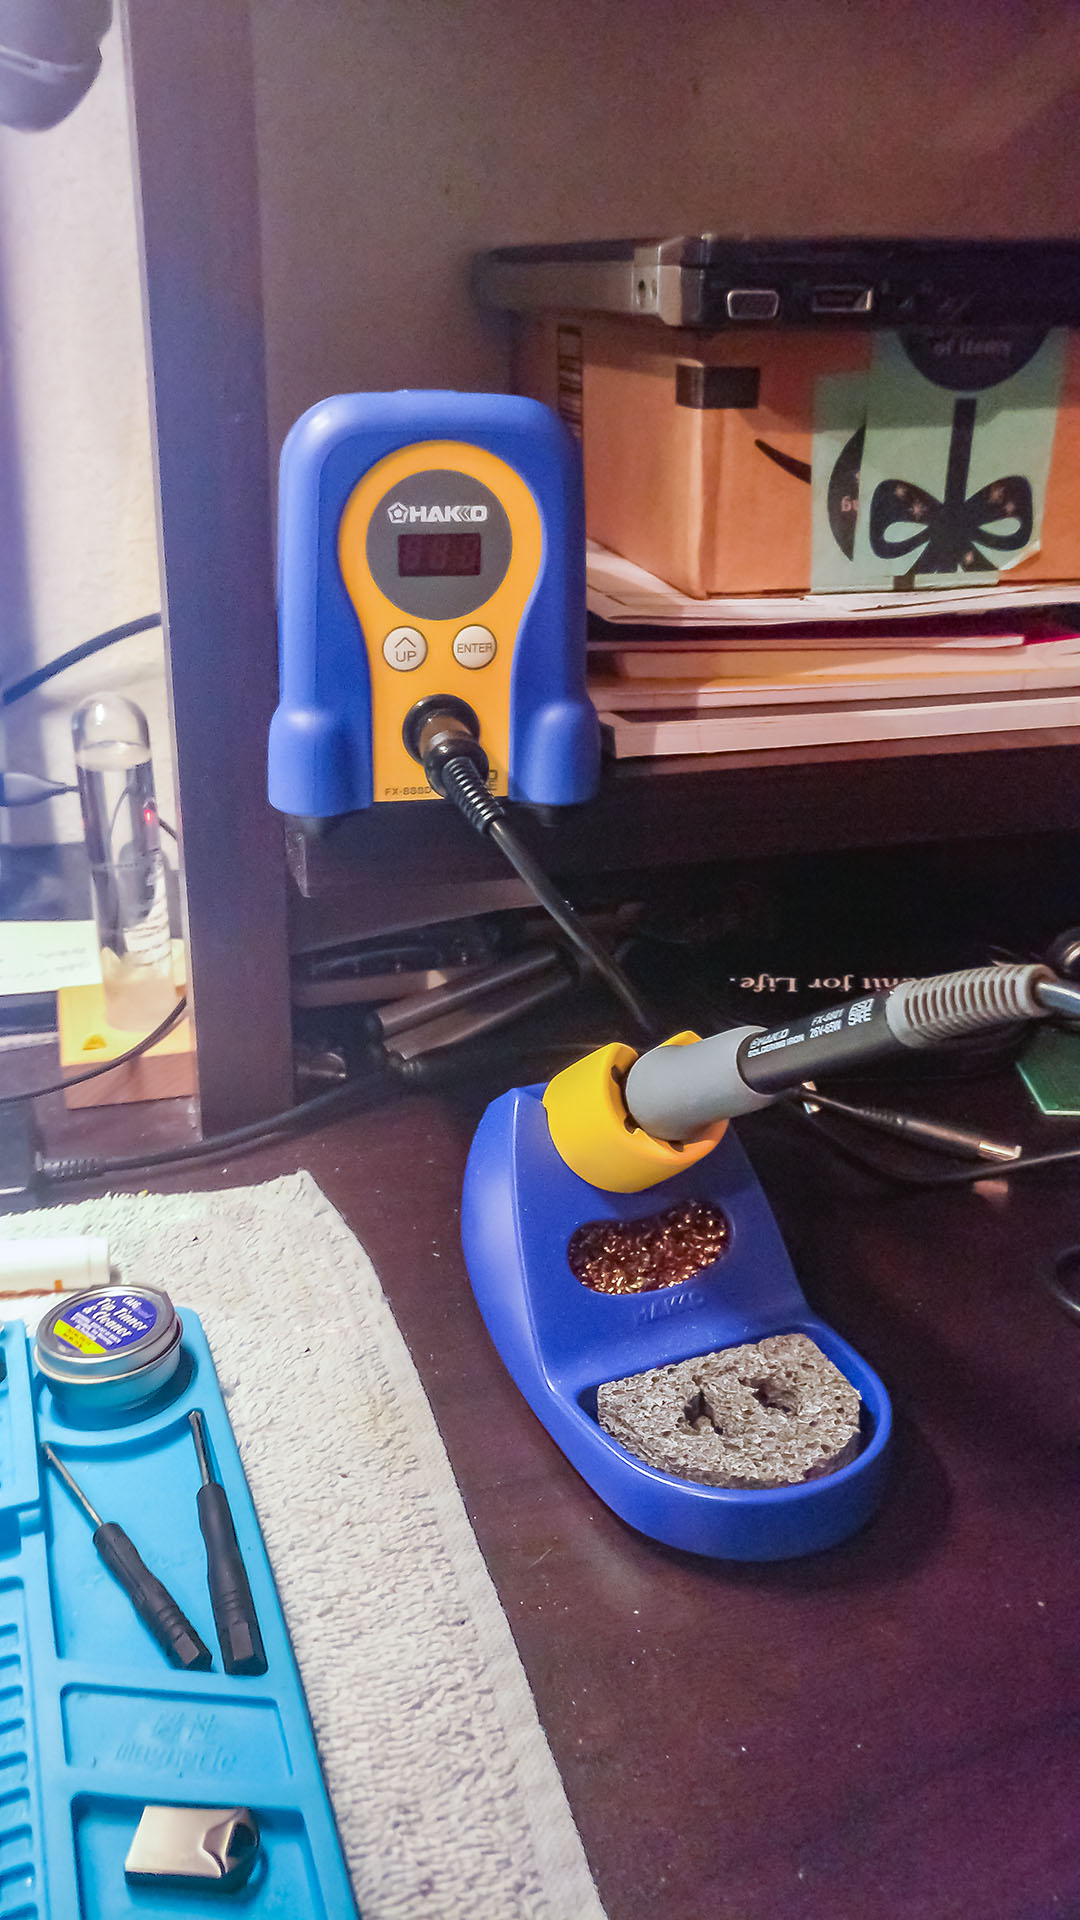 01-Hakko Iron and Stand